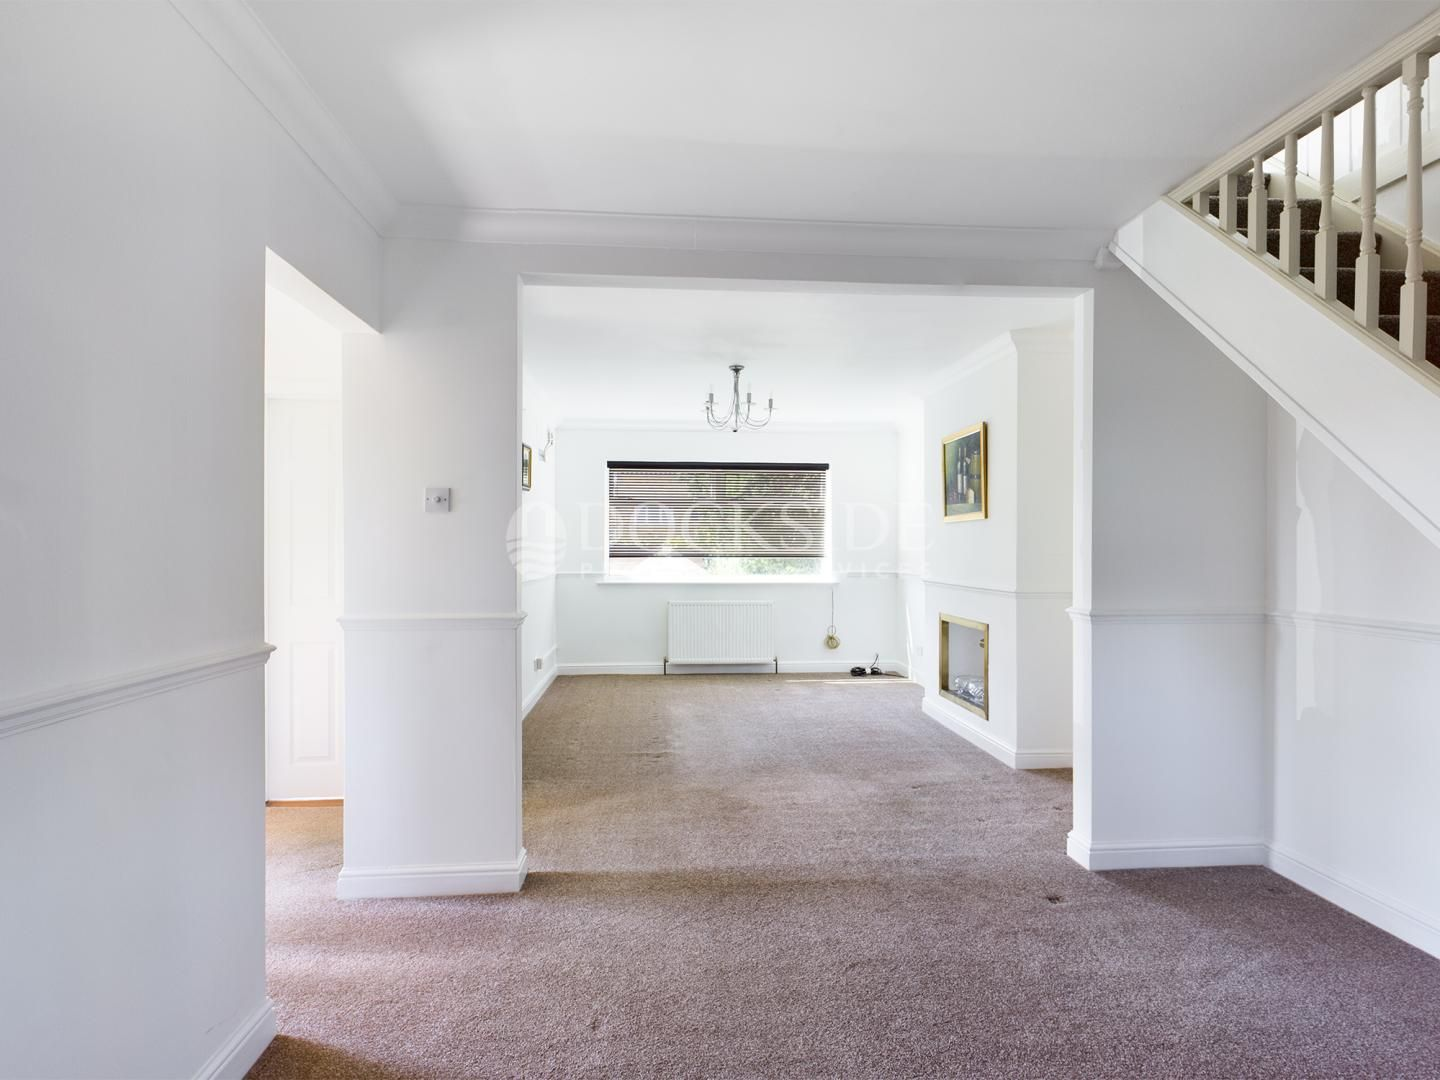 3 bed house for sale in Sharfleet Drive, ME2